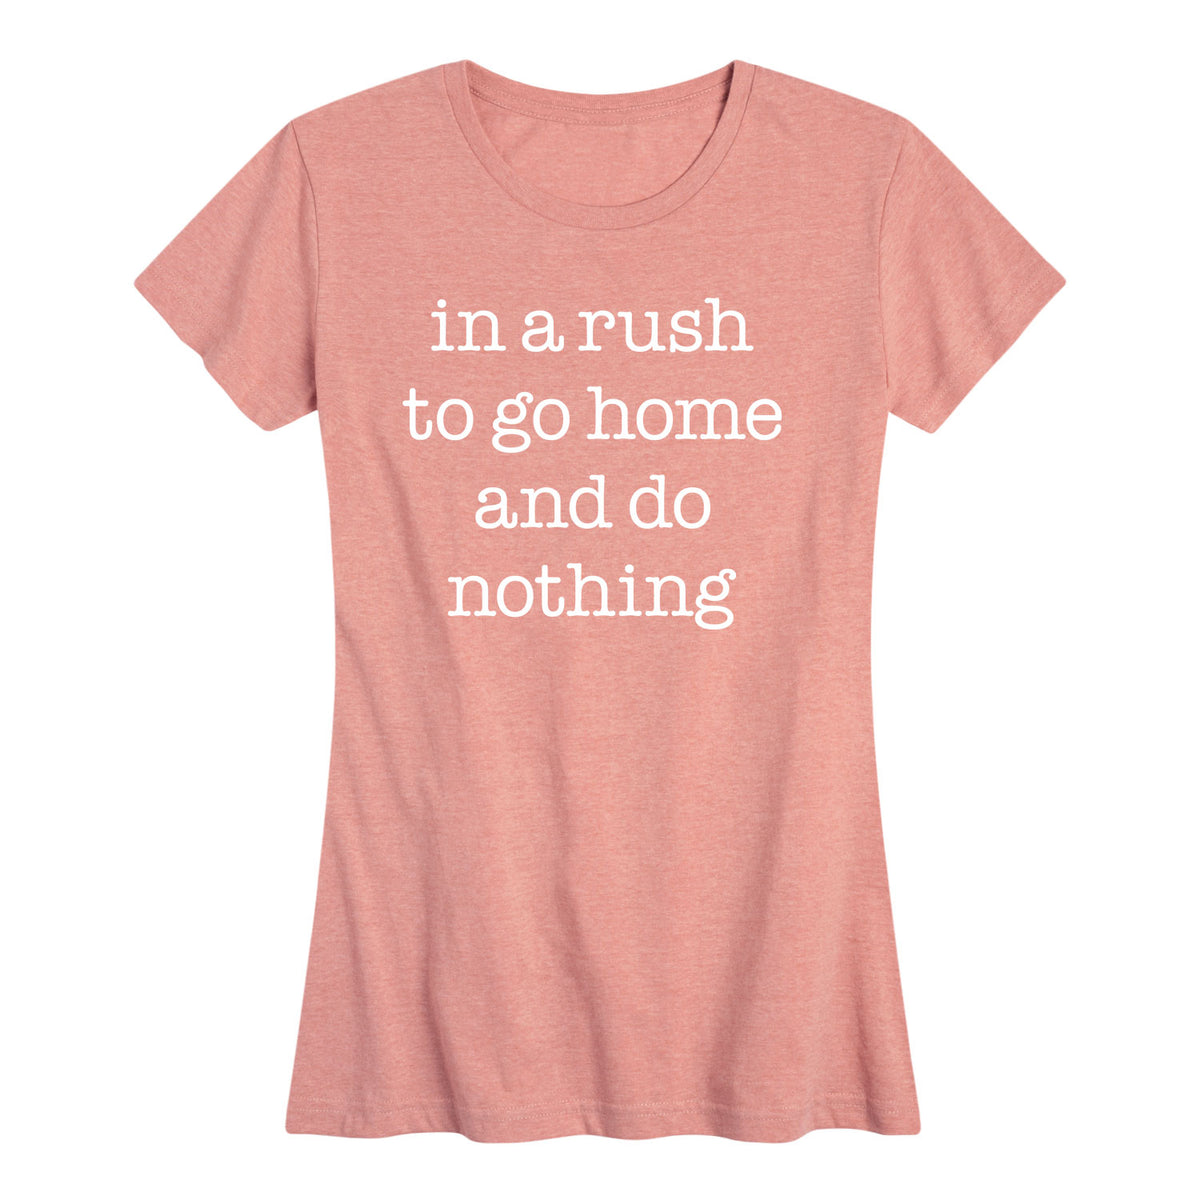 In A Rush To Go Home - Women's Short Sleeve T-Shirt